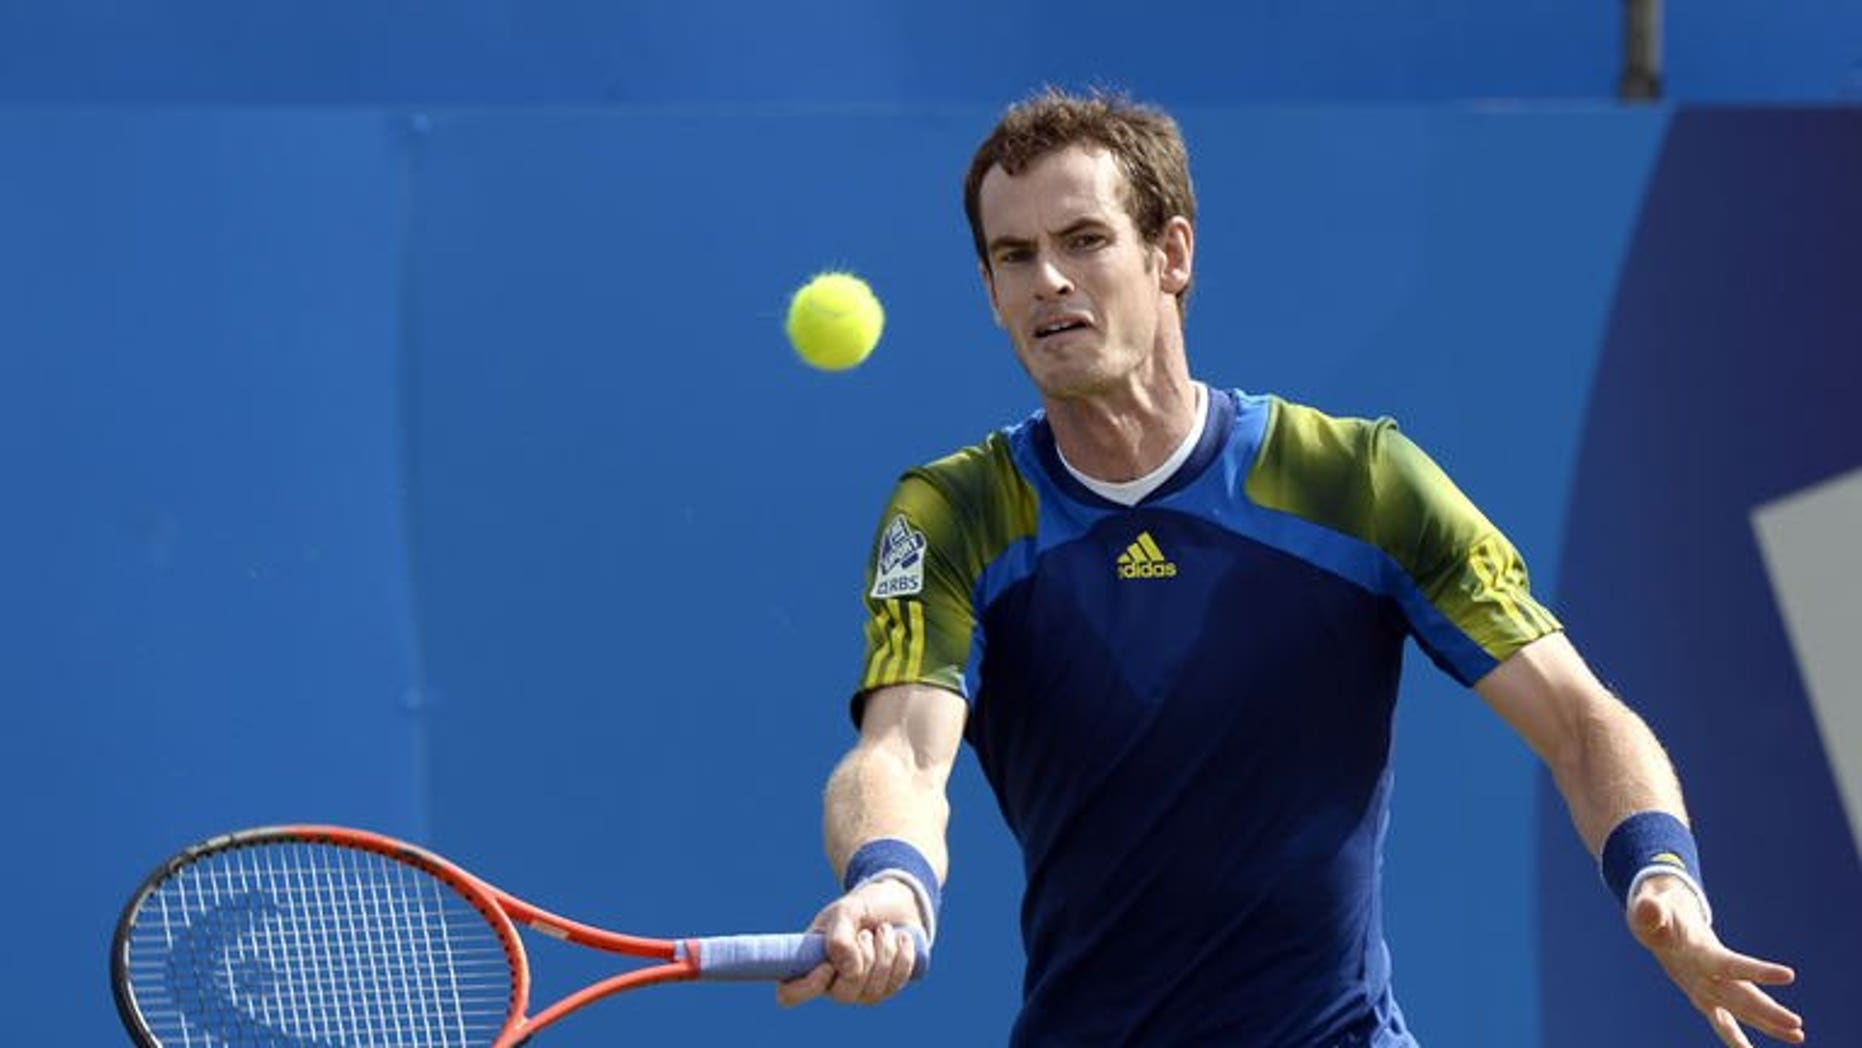 Britain's Andy Murray returns to Croatia's Marin Cilic during their ATP Aegon Championships final tennis match at the Queen's Club in west London on June 16, 2013. Murray believes the seeds for his historic Olympic and US Open triumphs were sown by his tearful defeat to Roger Federer in last year's Wimbledon final.